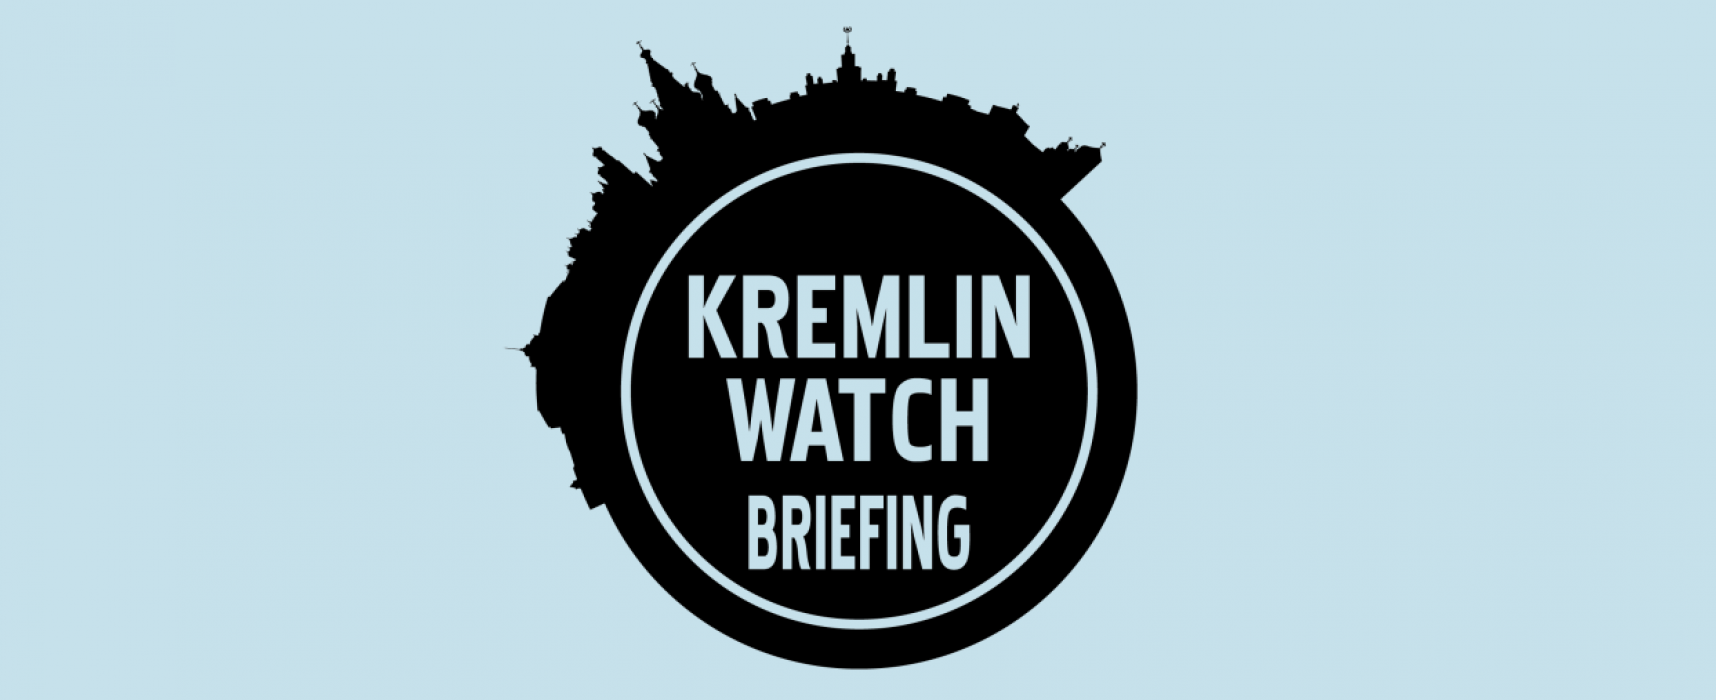 Kremlin Watch Briefing: The Kremlin failed to take over Interpol